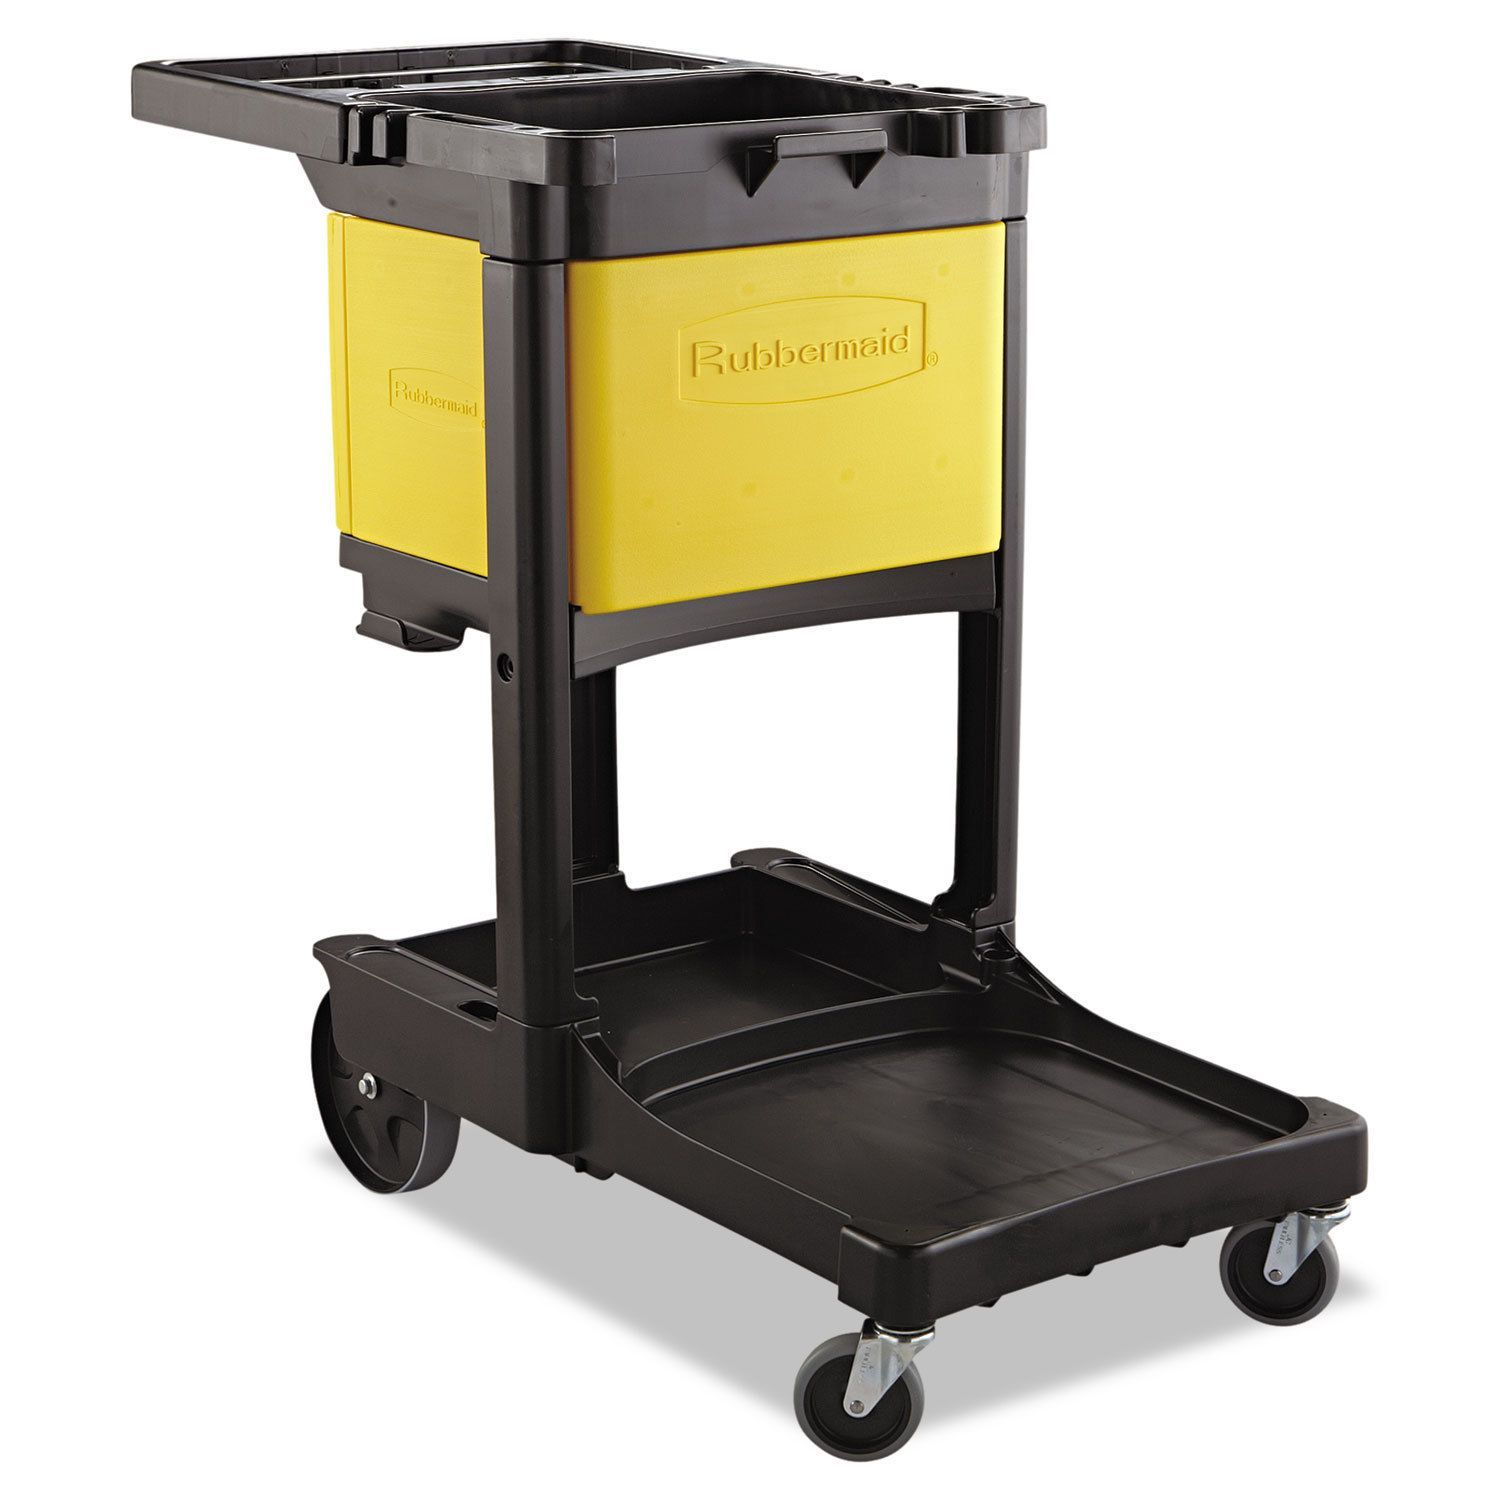 Rubbermaid Commercial Locking Cabinet For Rubbermaid Commercial Cleaning Carts